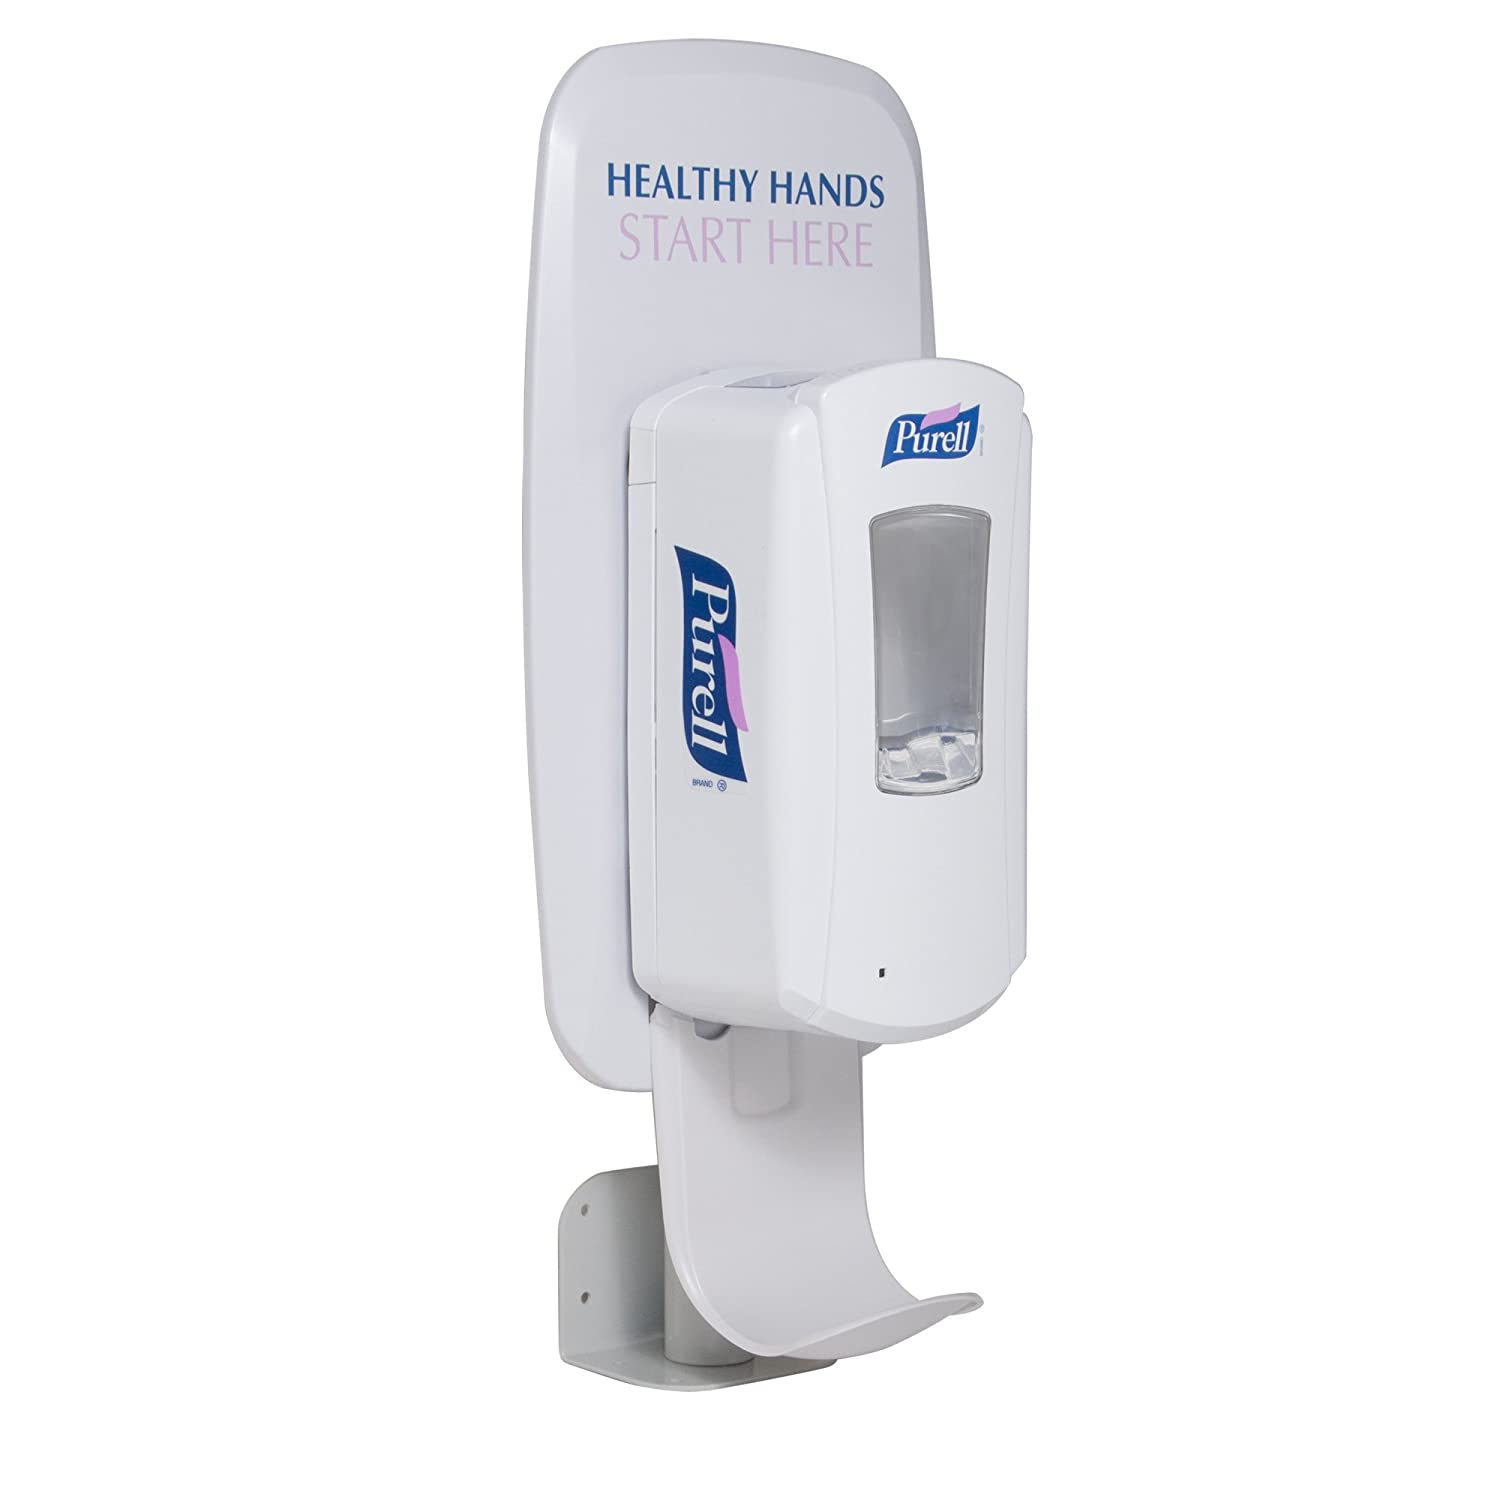 Purell Universal Wall Or Counter Mount Dispenser Stand For Purell